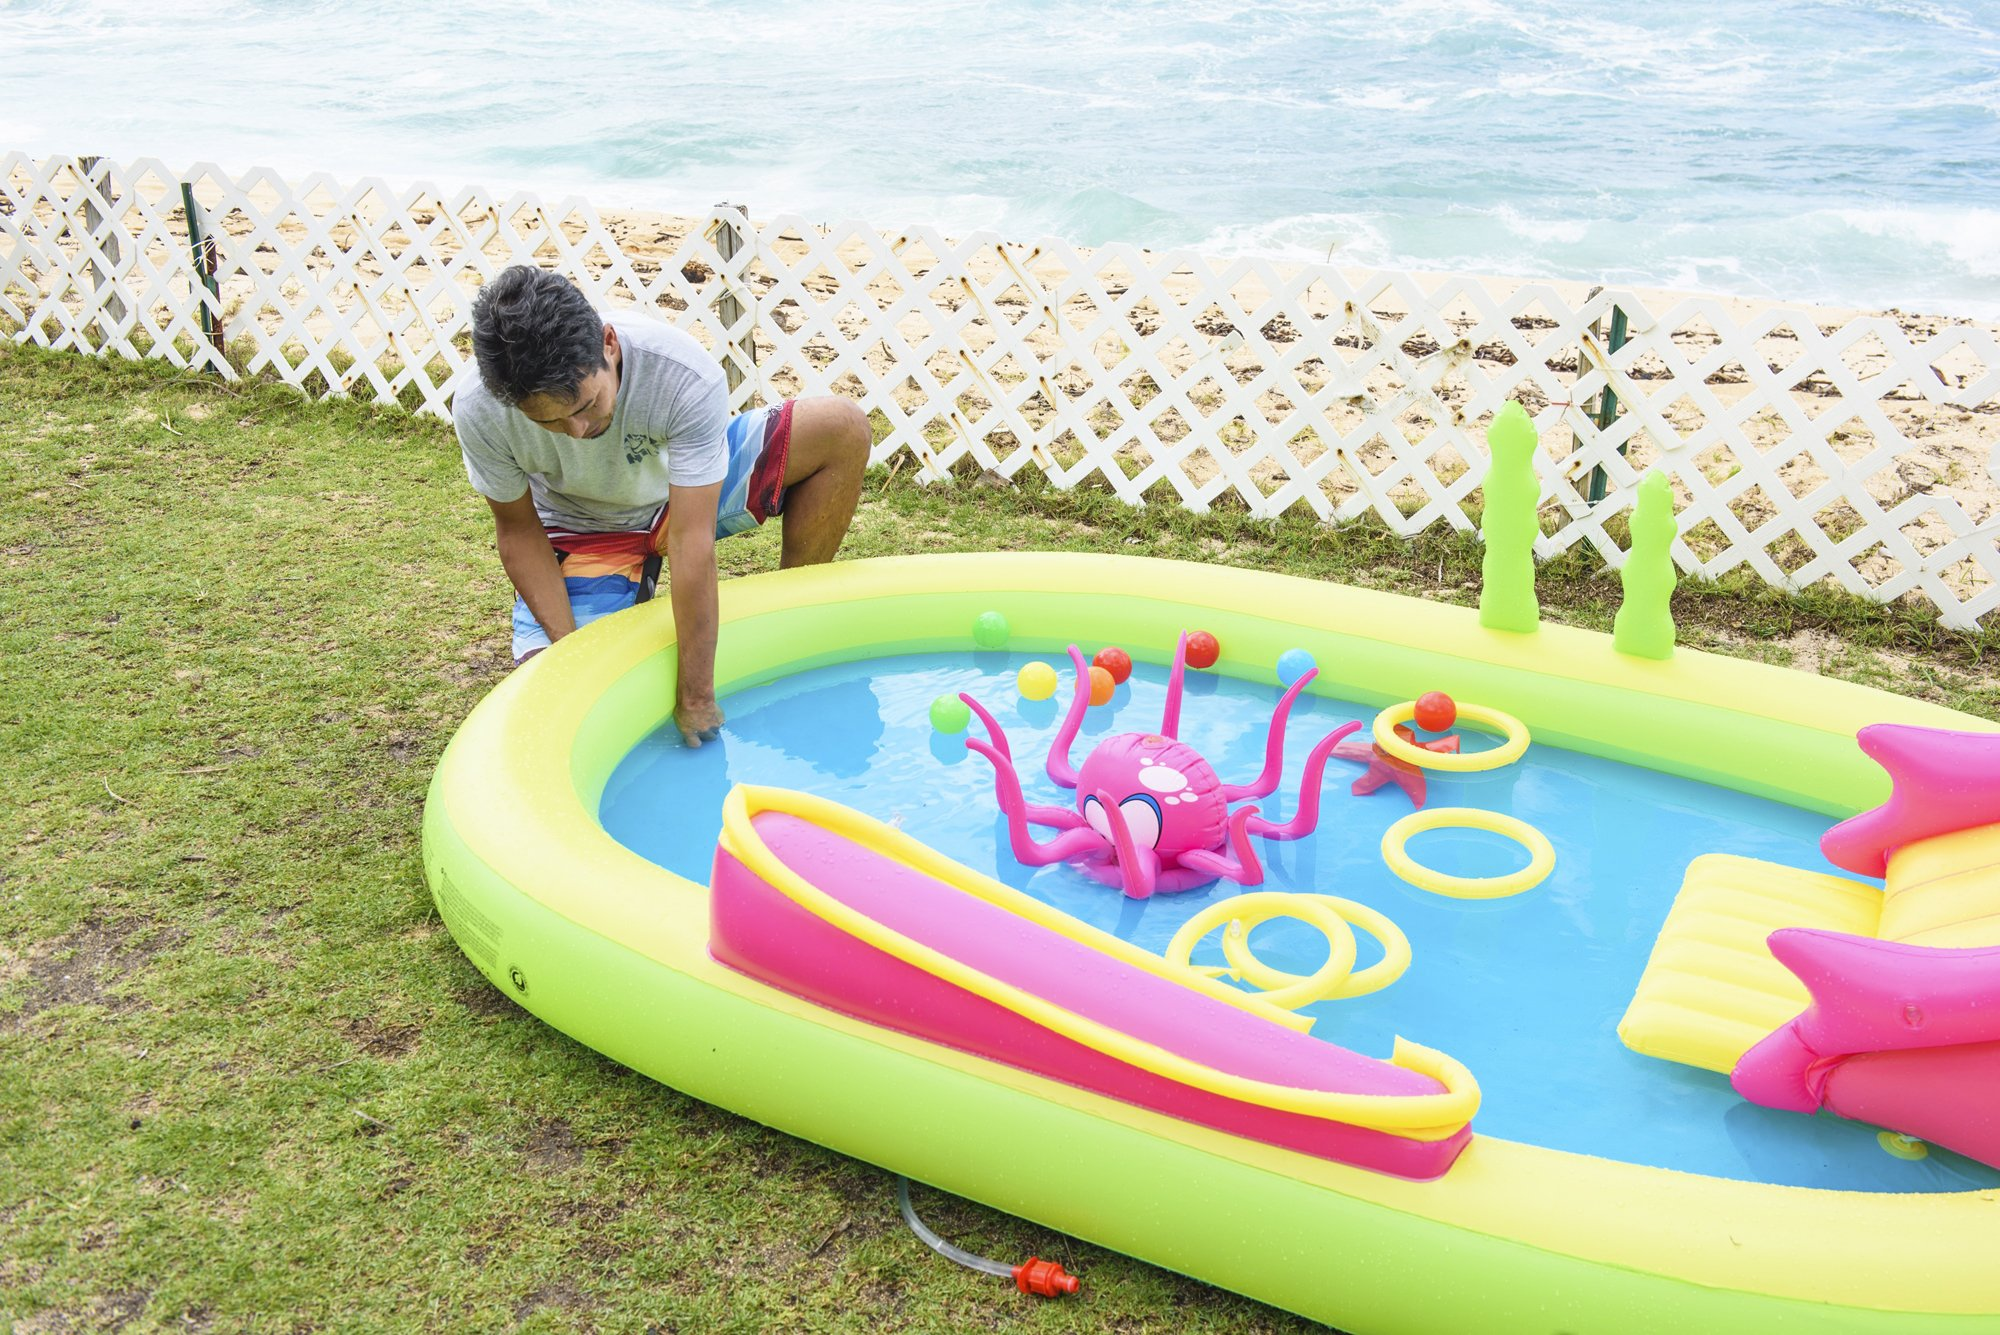 Jilong Giant Inflatable Sea Animal Kiddie Play Pool - Inflatable Pool for Kids - Complete with Pool Accessories and Water Activities - 117'' X 65'' X 22''